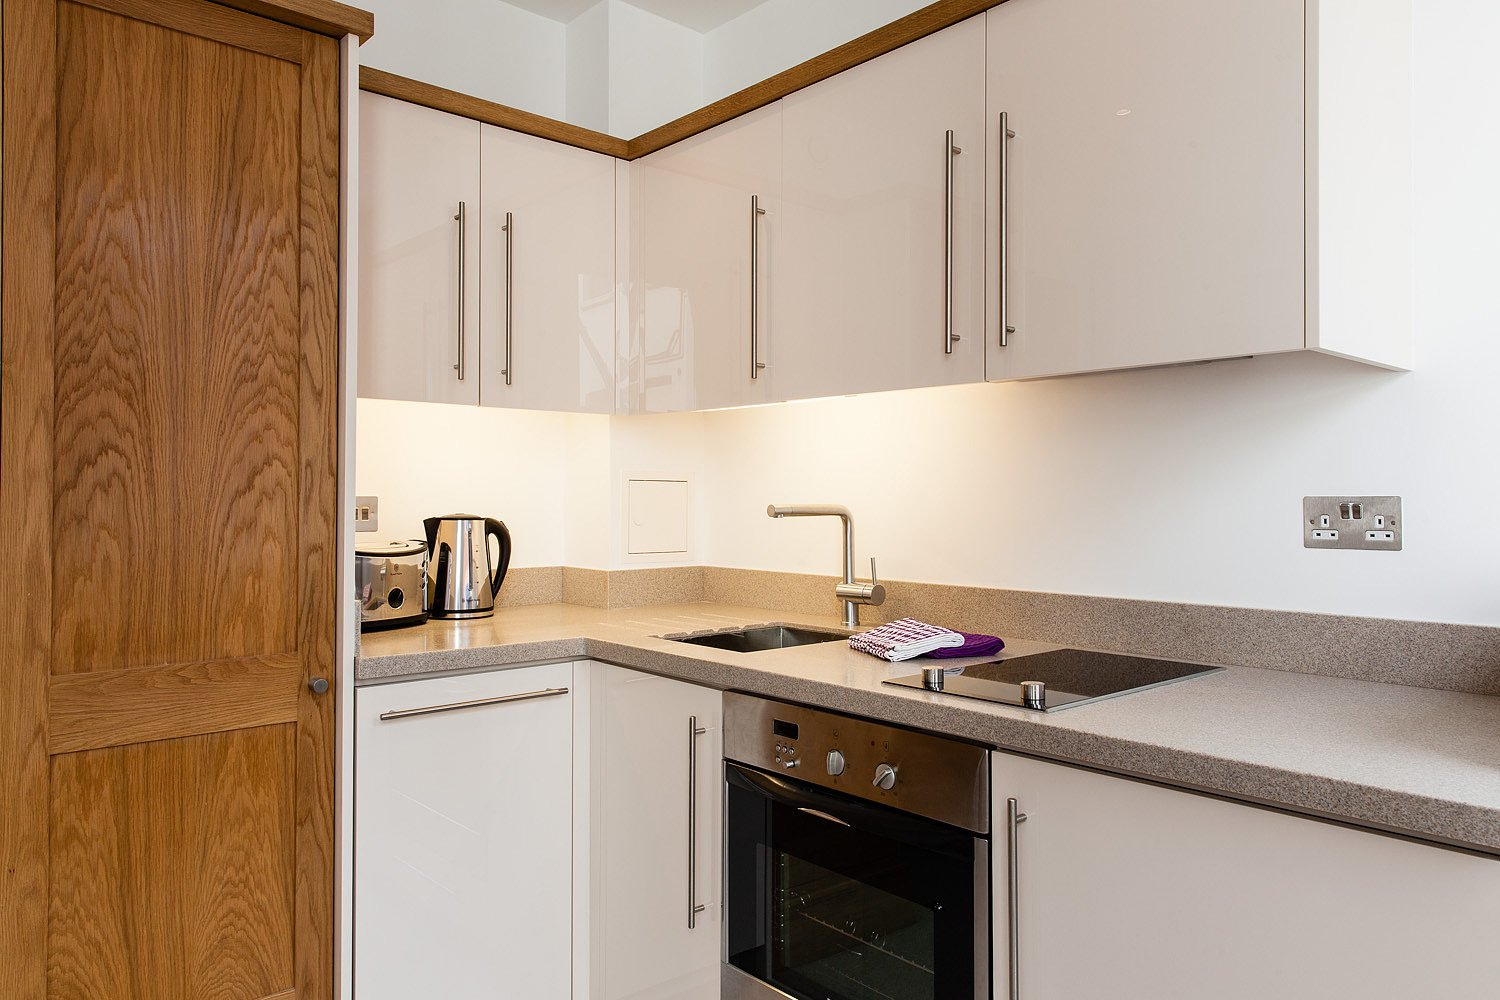 Serviced-Apartments-Covent-Garden---Willoughby-Street-Available-Now!-Book-Cheap-Serviced-Apartments-in-the-heart-of-Central-London-I-Free-Wi-Fi-|-Urban-Stay